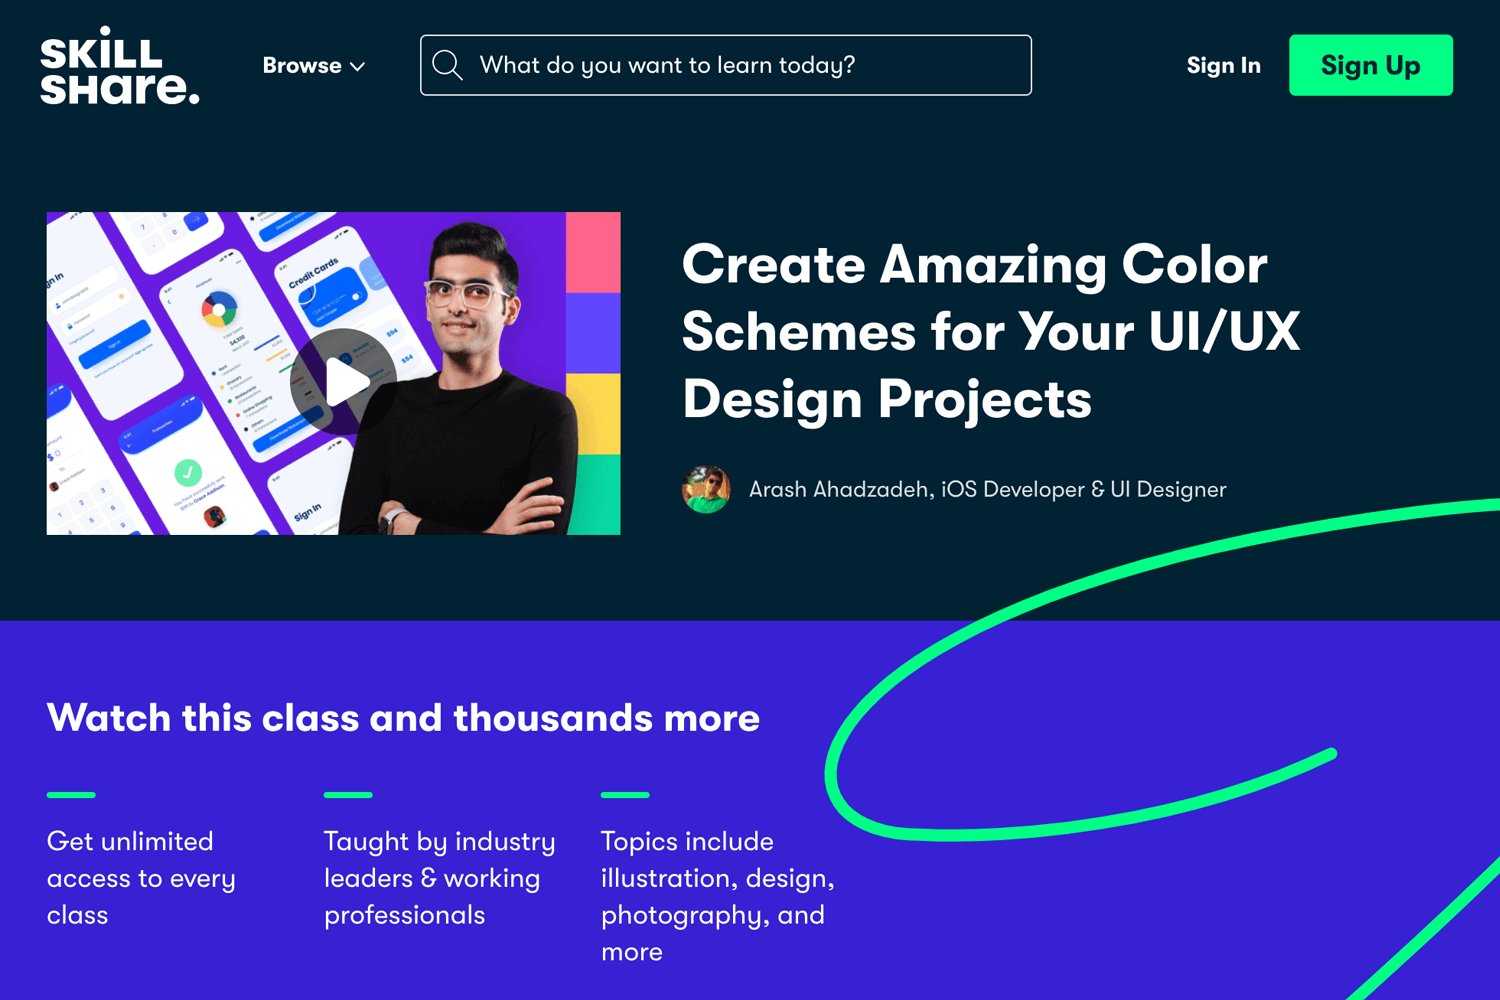 web design tutorial on color schemes and theory